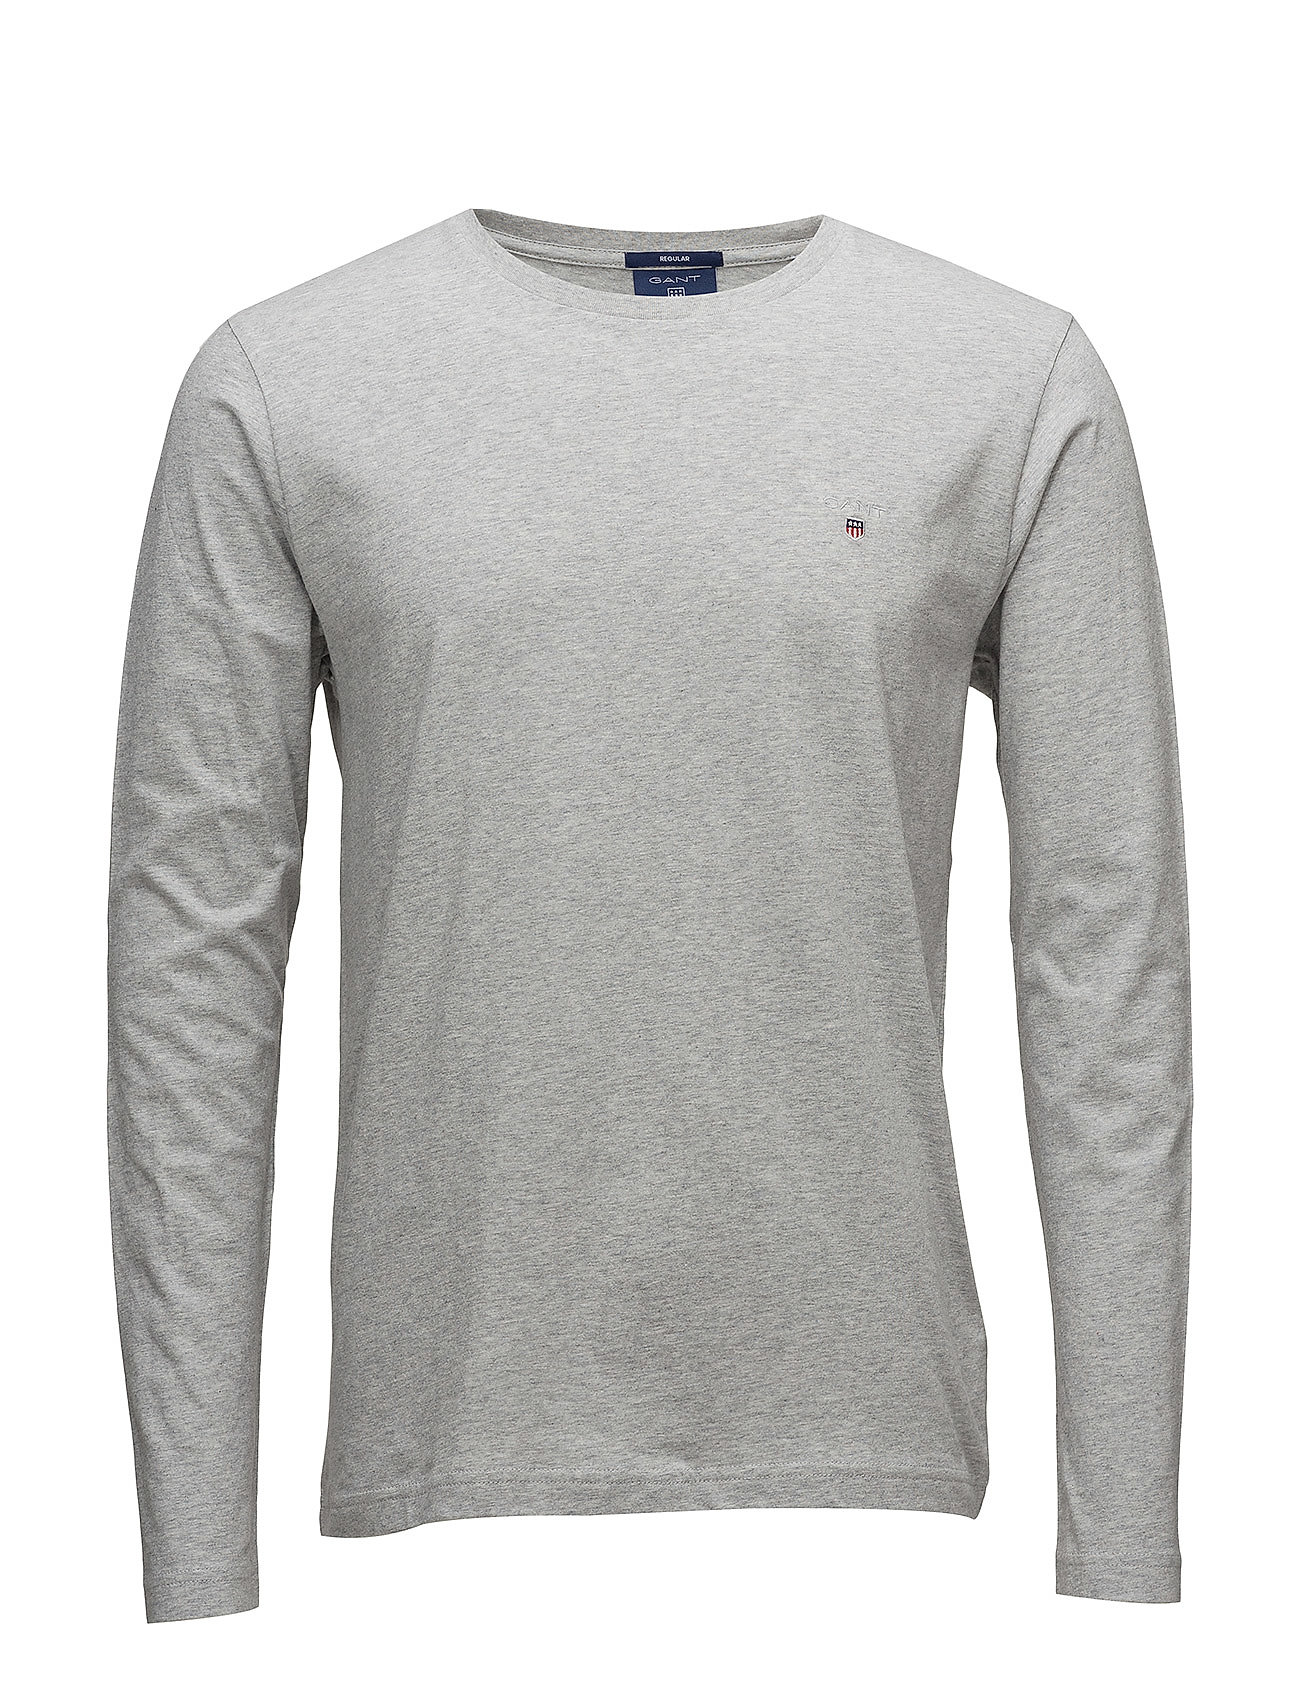 GANT THE ORIGINAL LS T-SHIRT - LIGHT GREY MELANGE